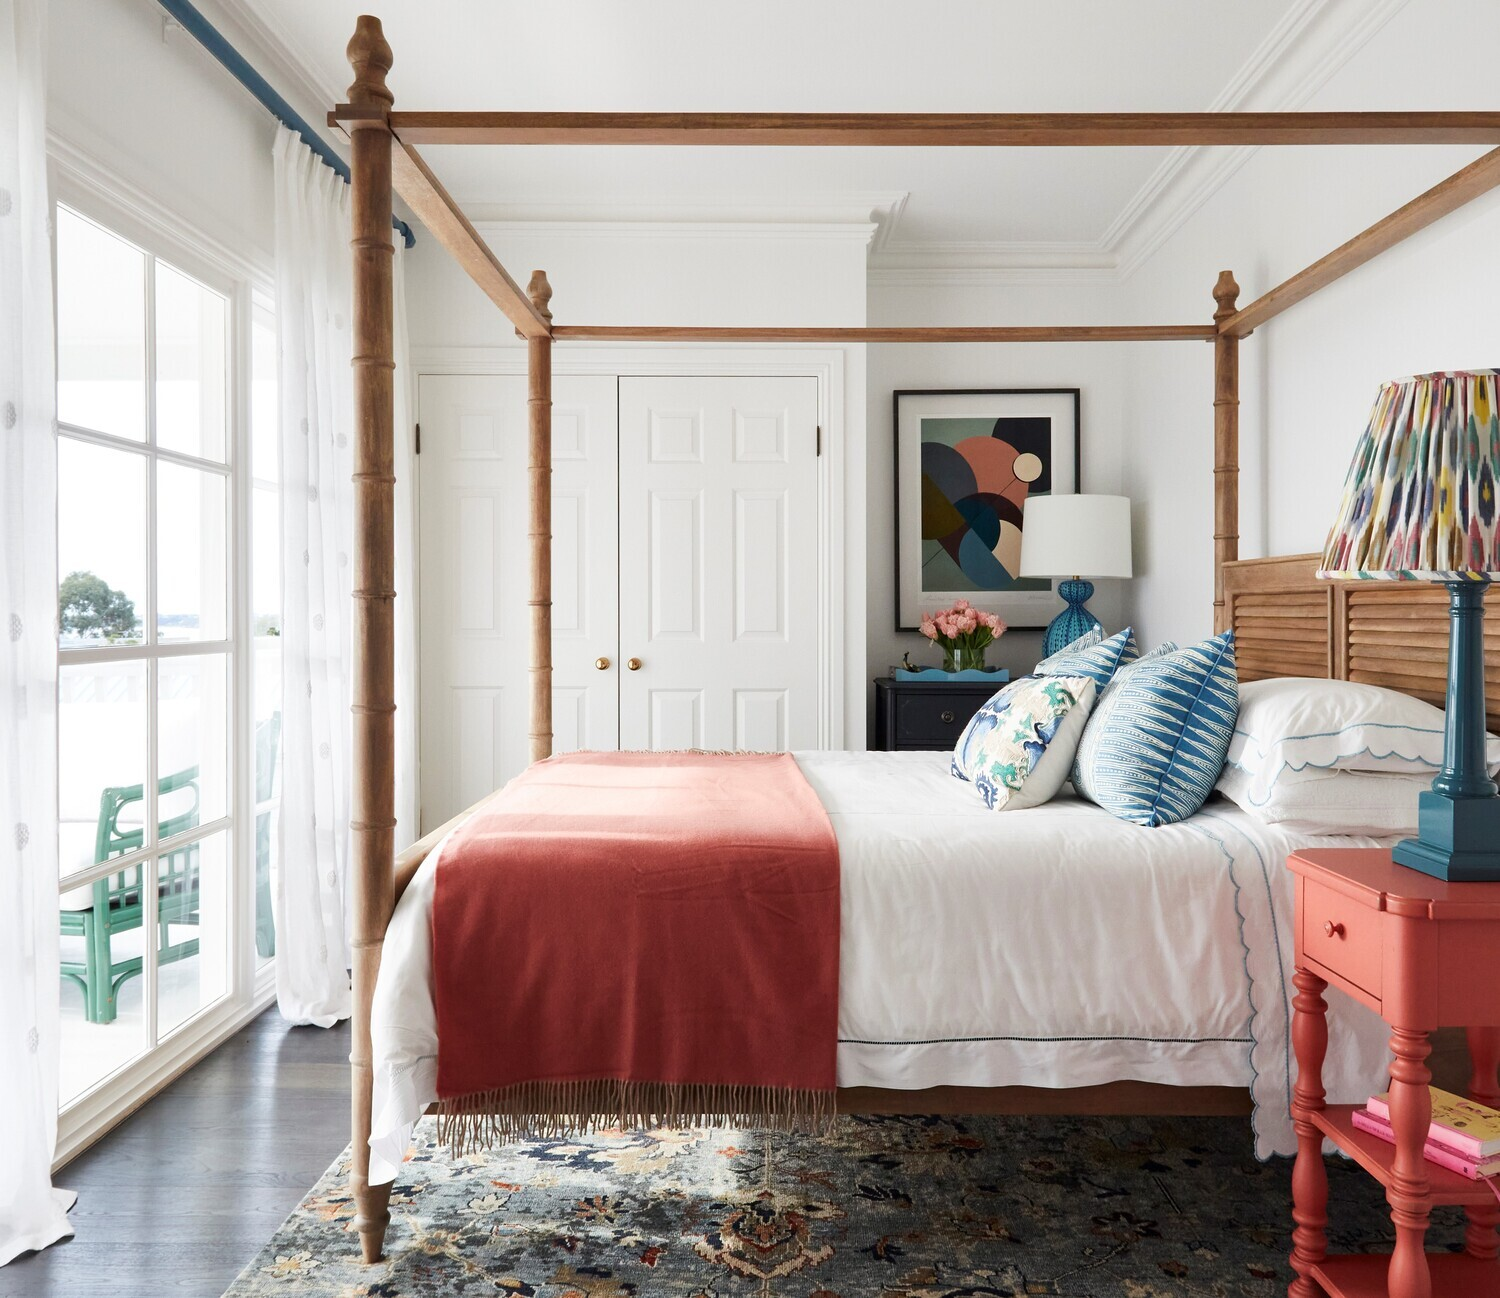 BOOK A STUDENT BEDROOM DESIGN CONSULTATION WITH THE KWD DESIGN TEAM